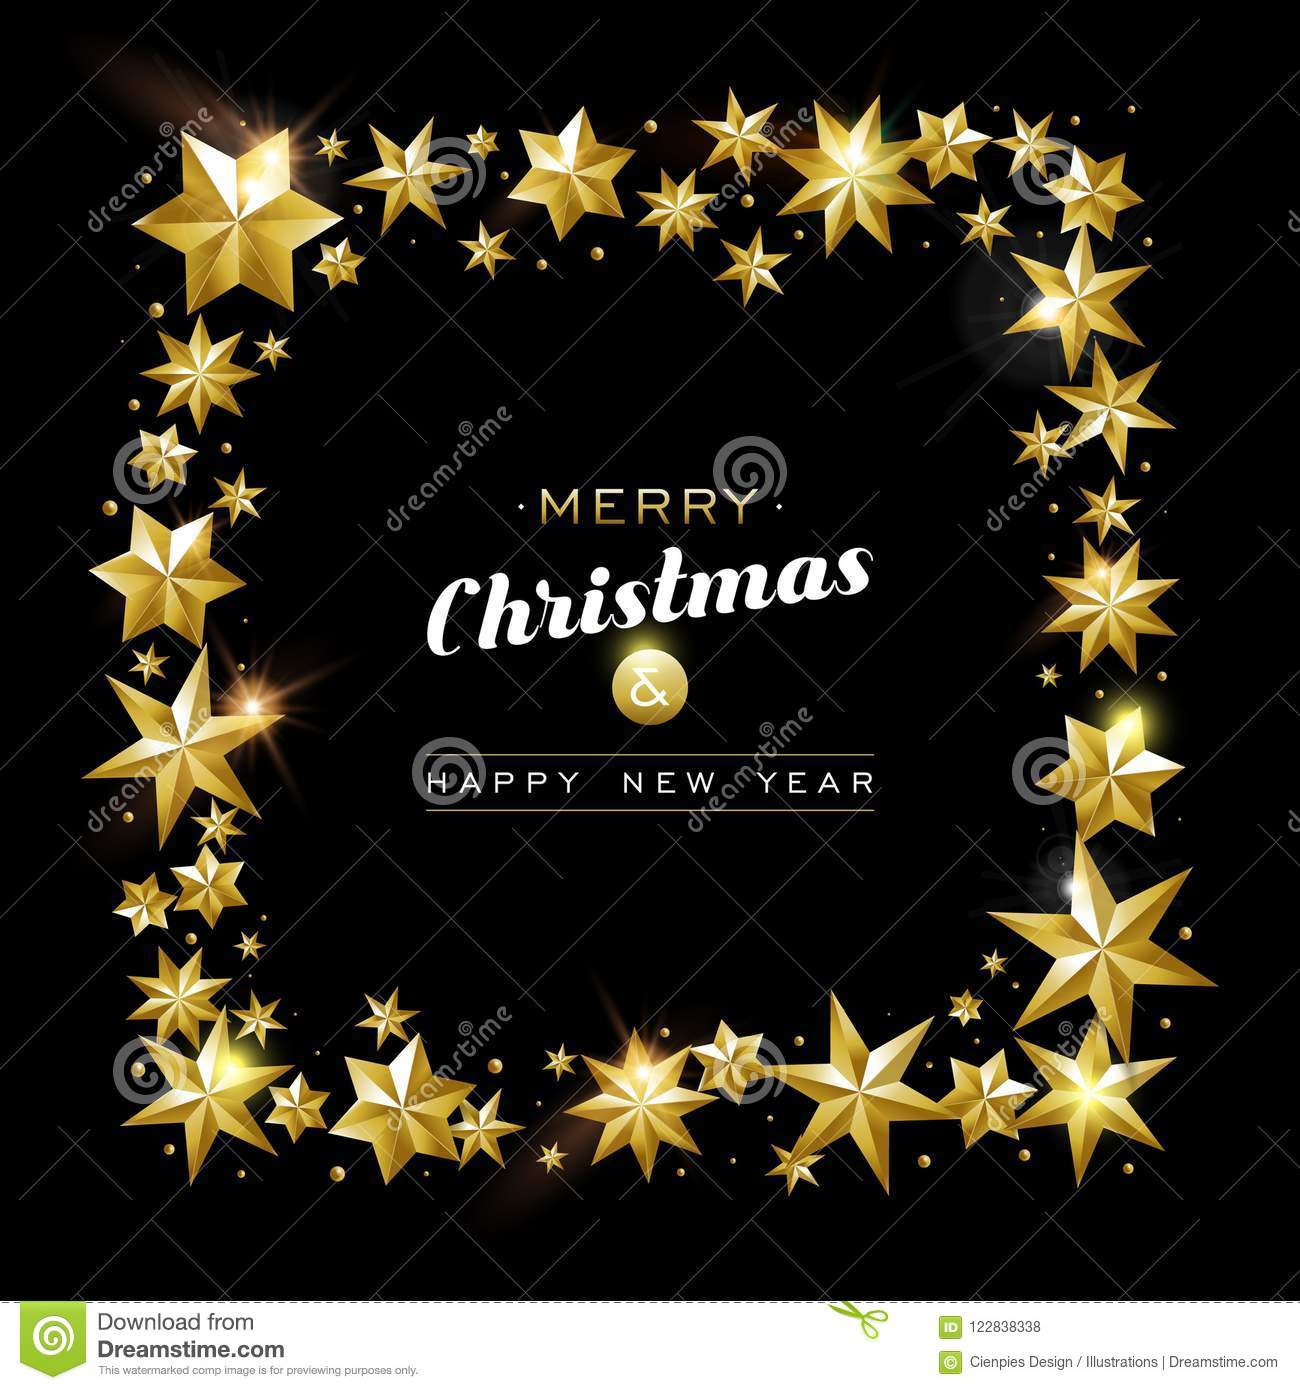 christmas and new year gold star frame card design